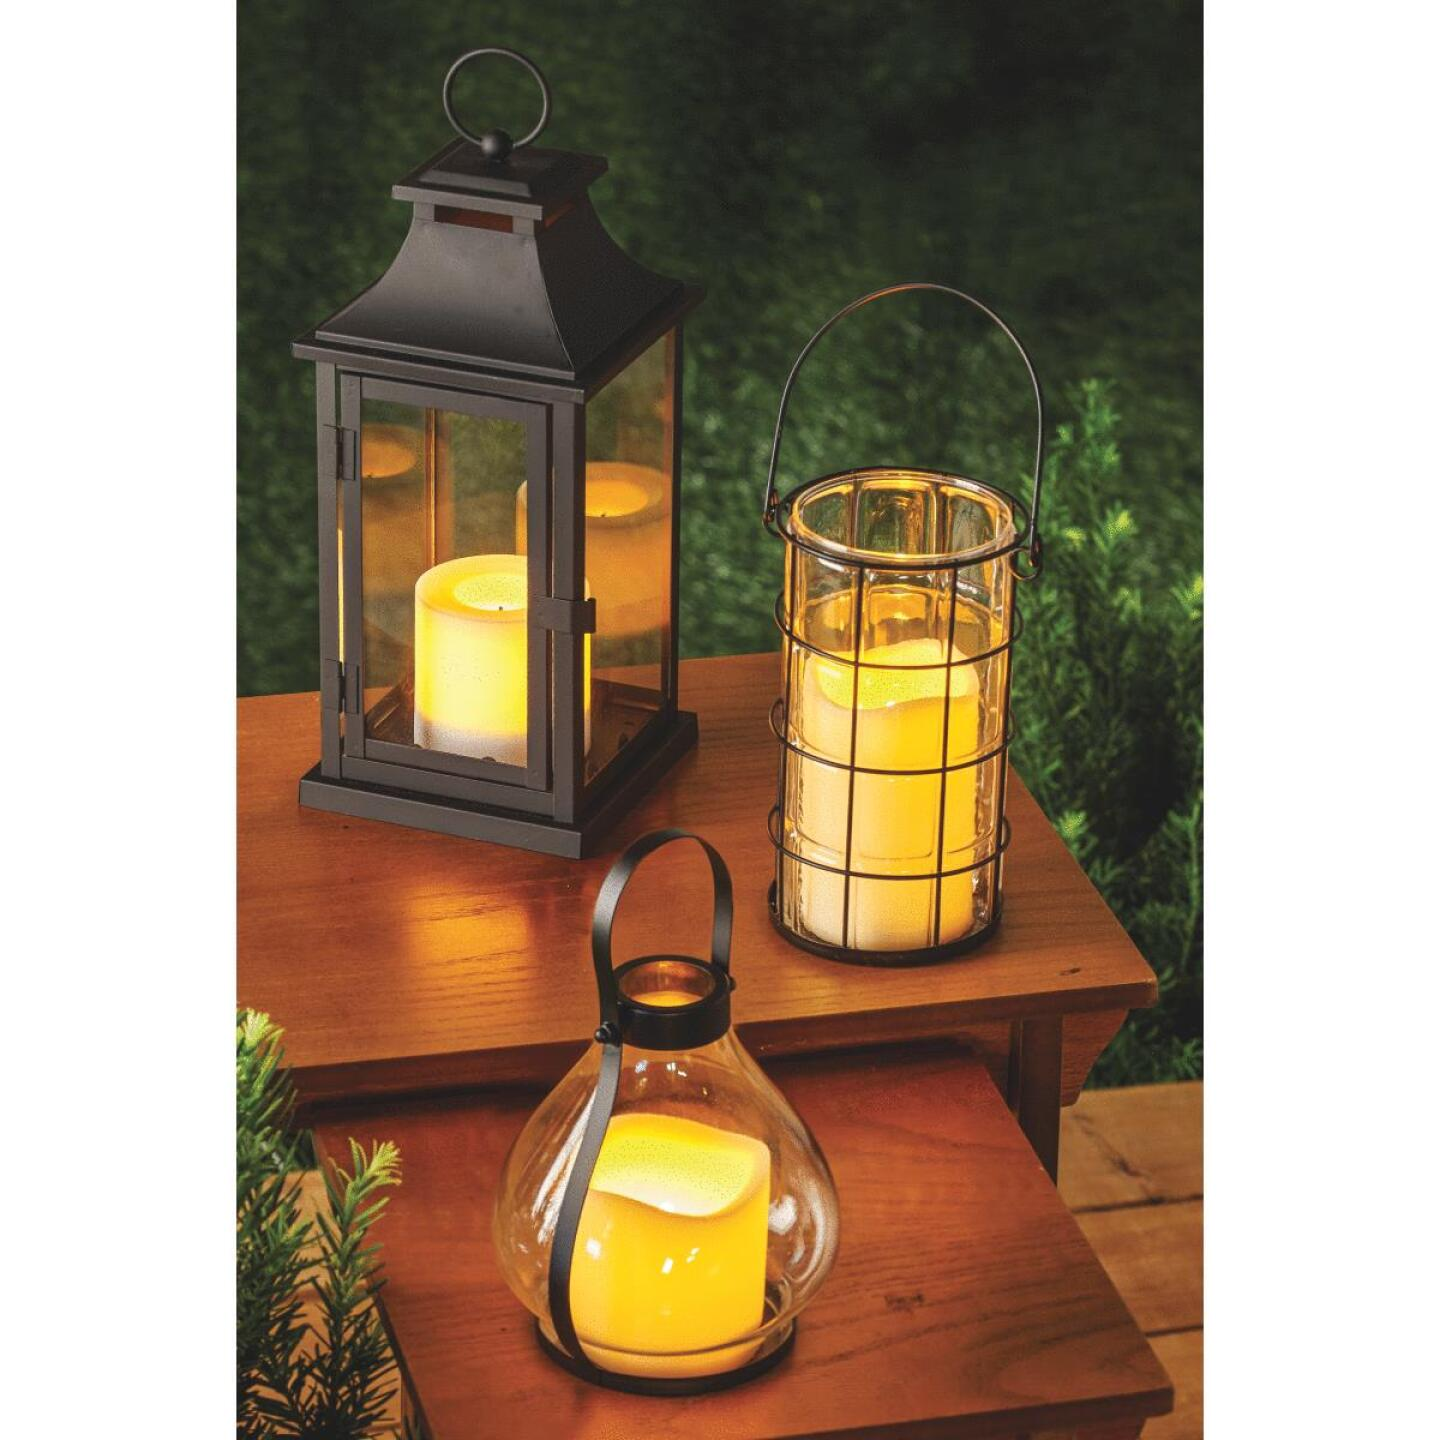 Paradise 12 In. H. x 5.31 In. Dia. Black Metal LED Lantern Patio Light Image 2